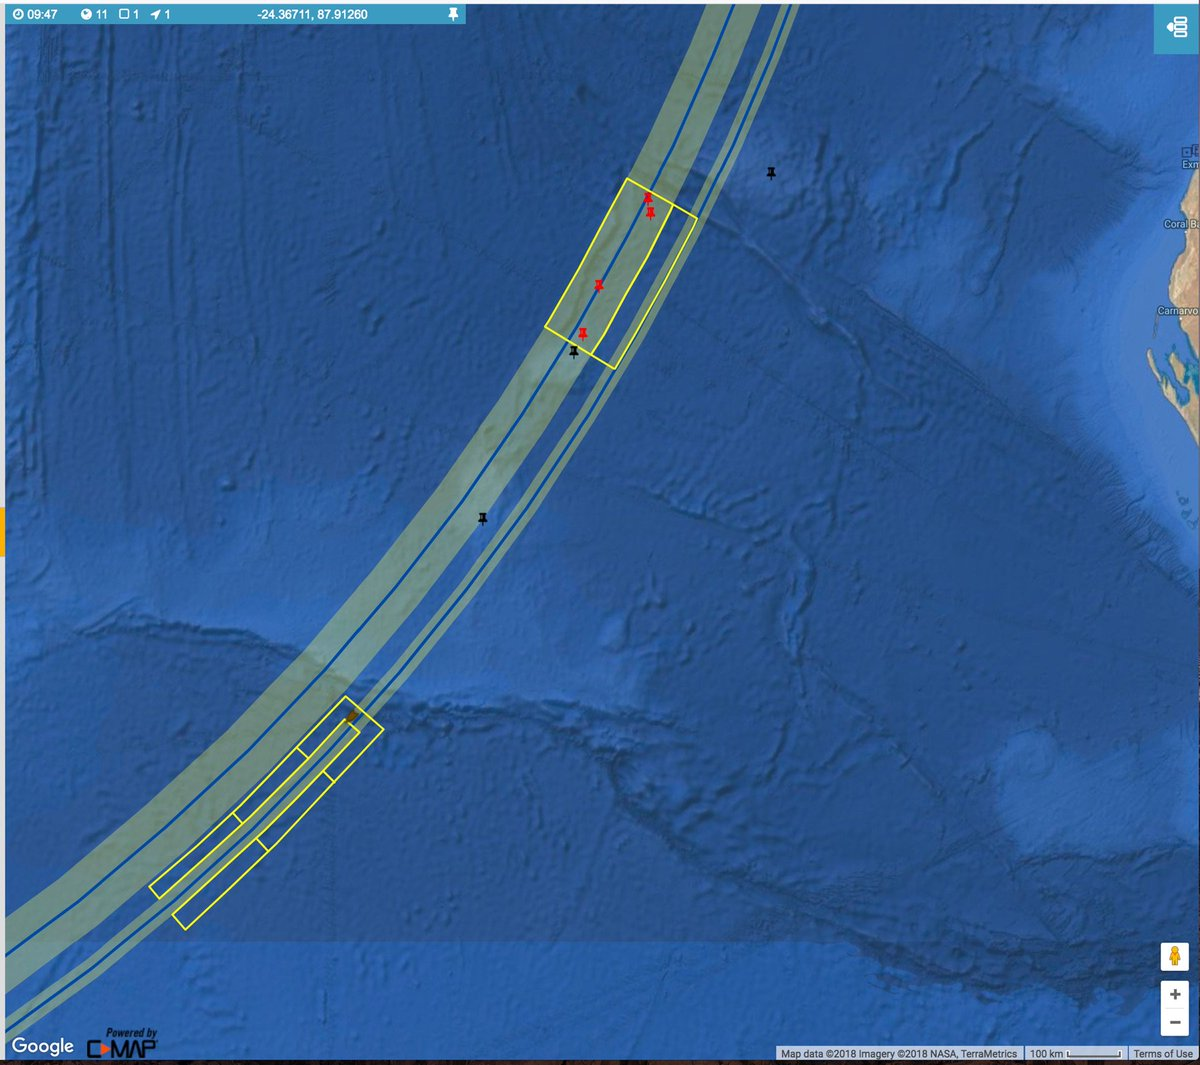 More Than 1000 Km North Of The Current Search Area More Than 2000 Km From The Original Pic Twitter Com B8z9neszrs